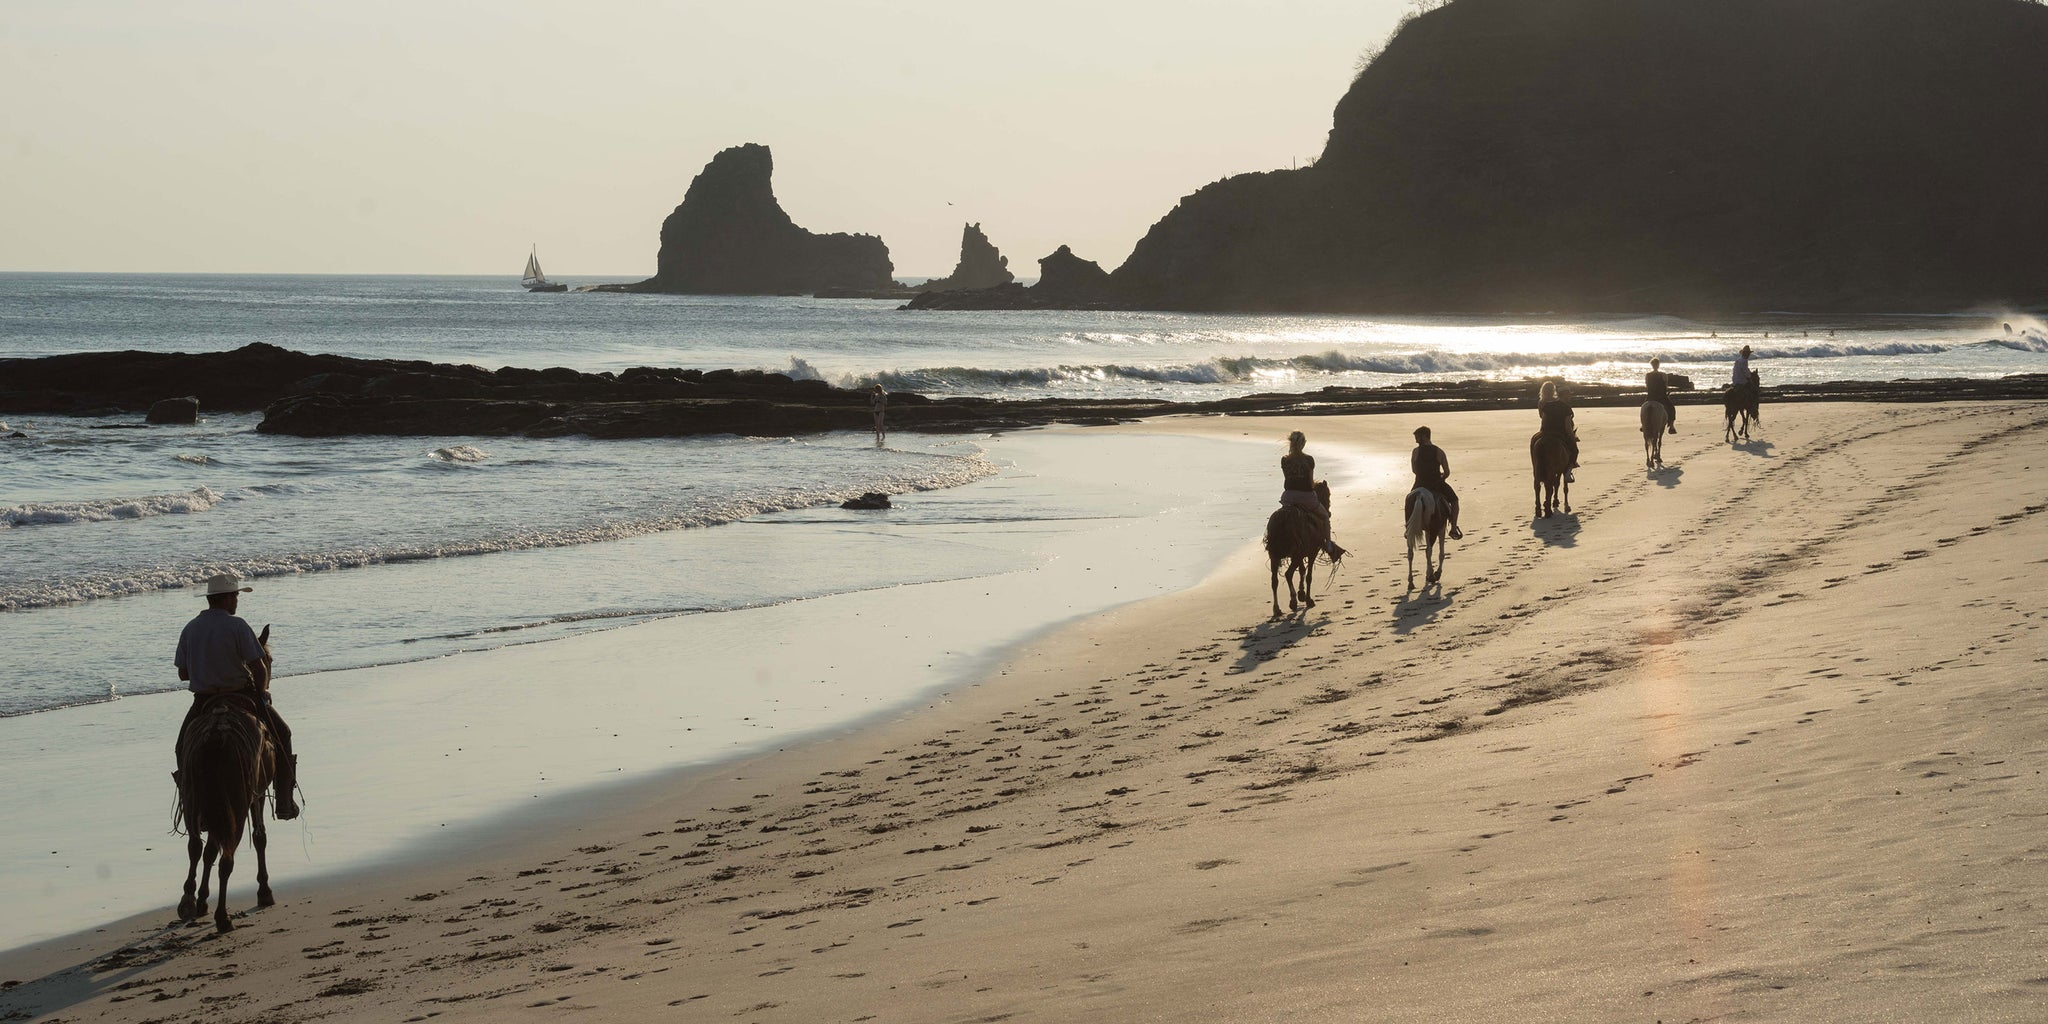 Bather - Excellent Adventures - Horseback riding in Nicaragua on the beach